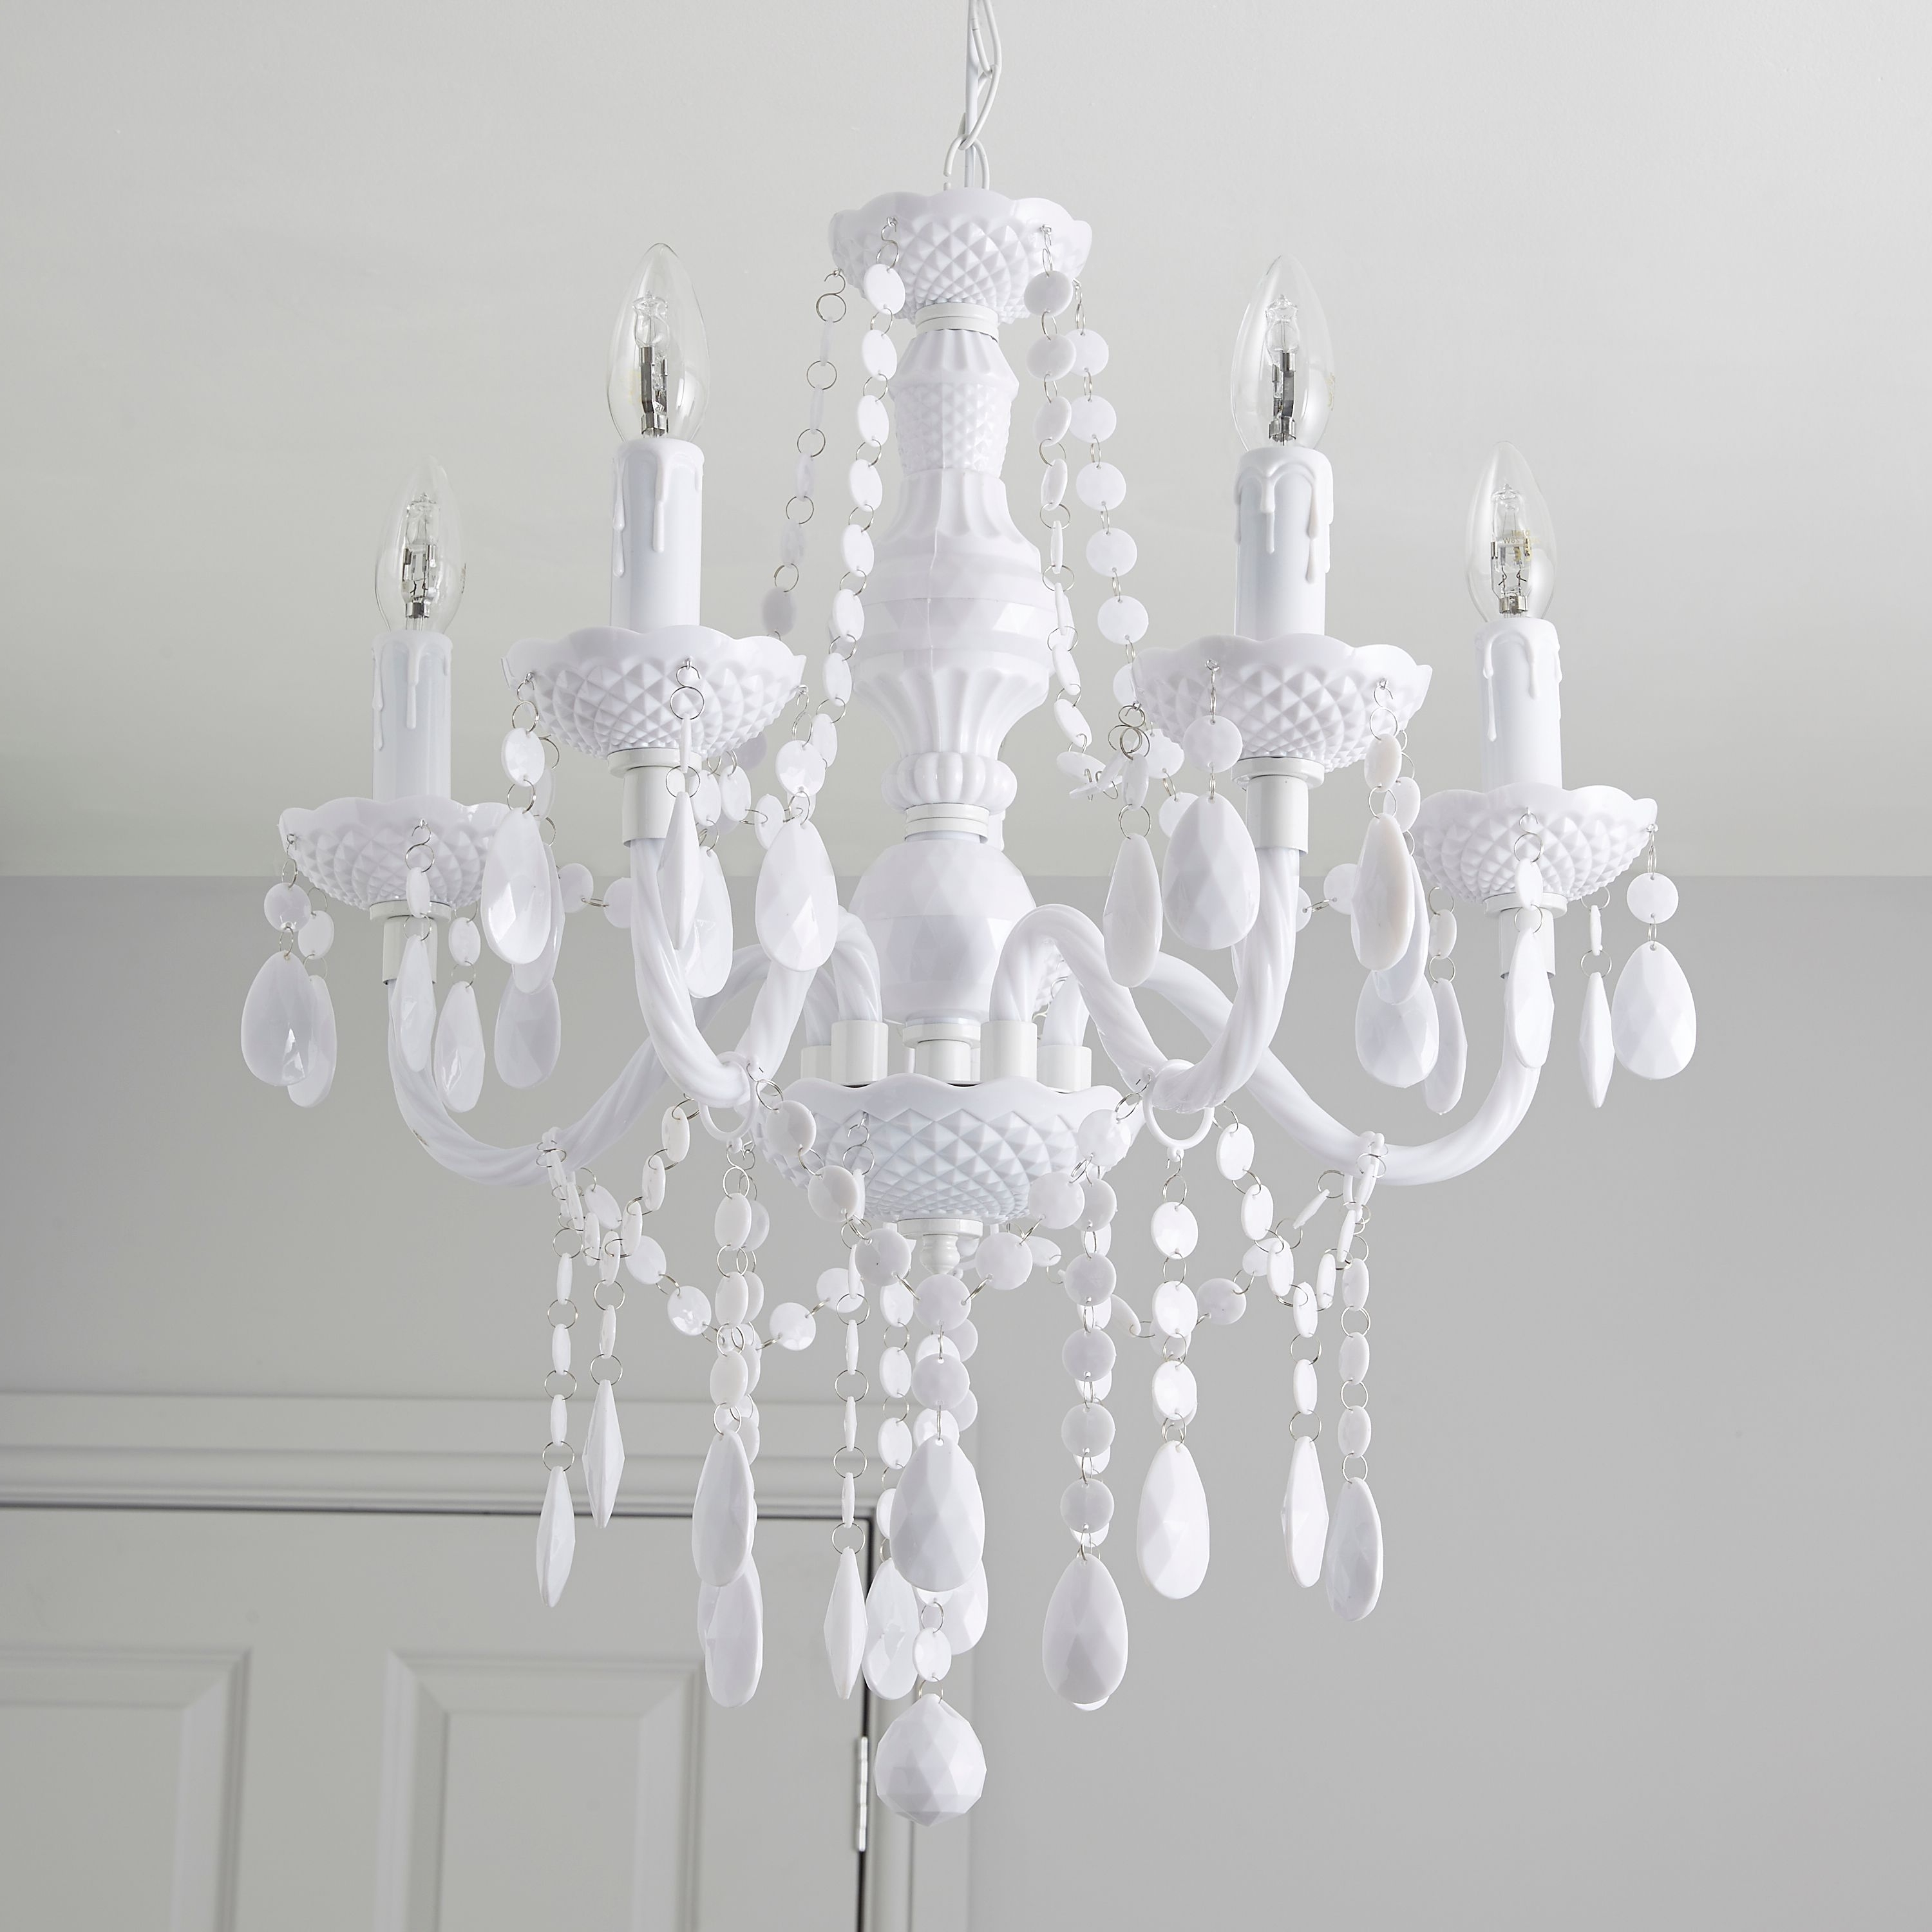 Latest White Crystal Chandelier Vintage Pics Ceiling Fan Whitewhite Kit Regarding White Chandeliers (View 5 of 15)